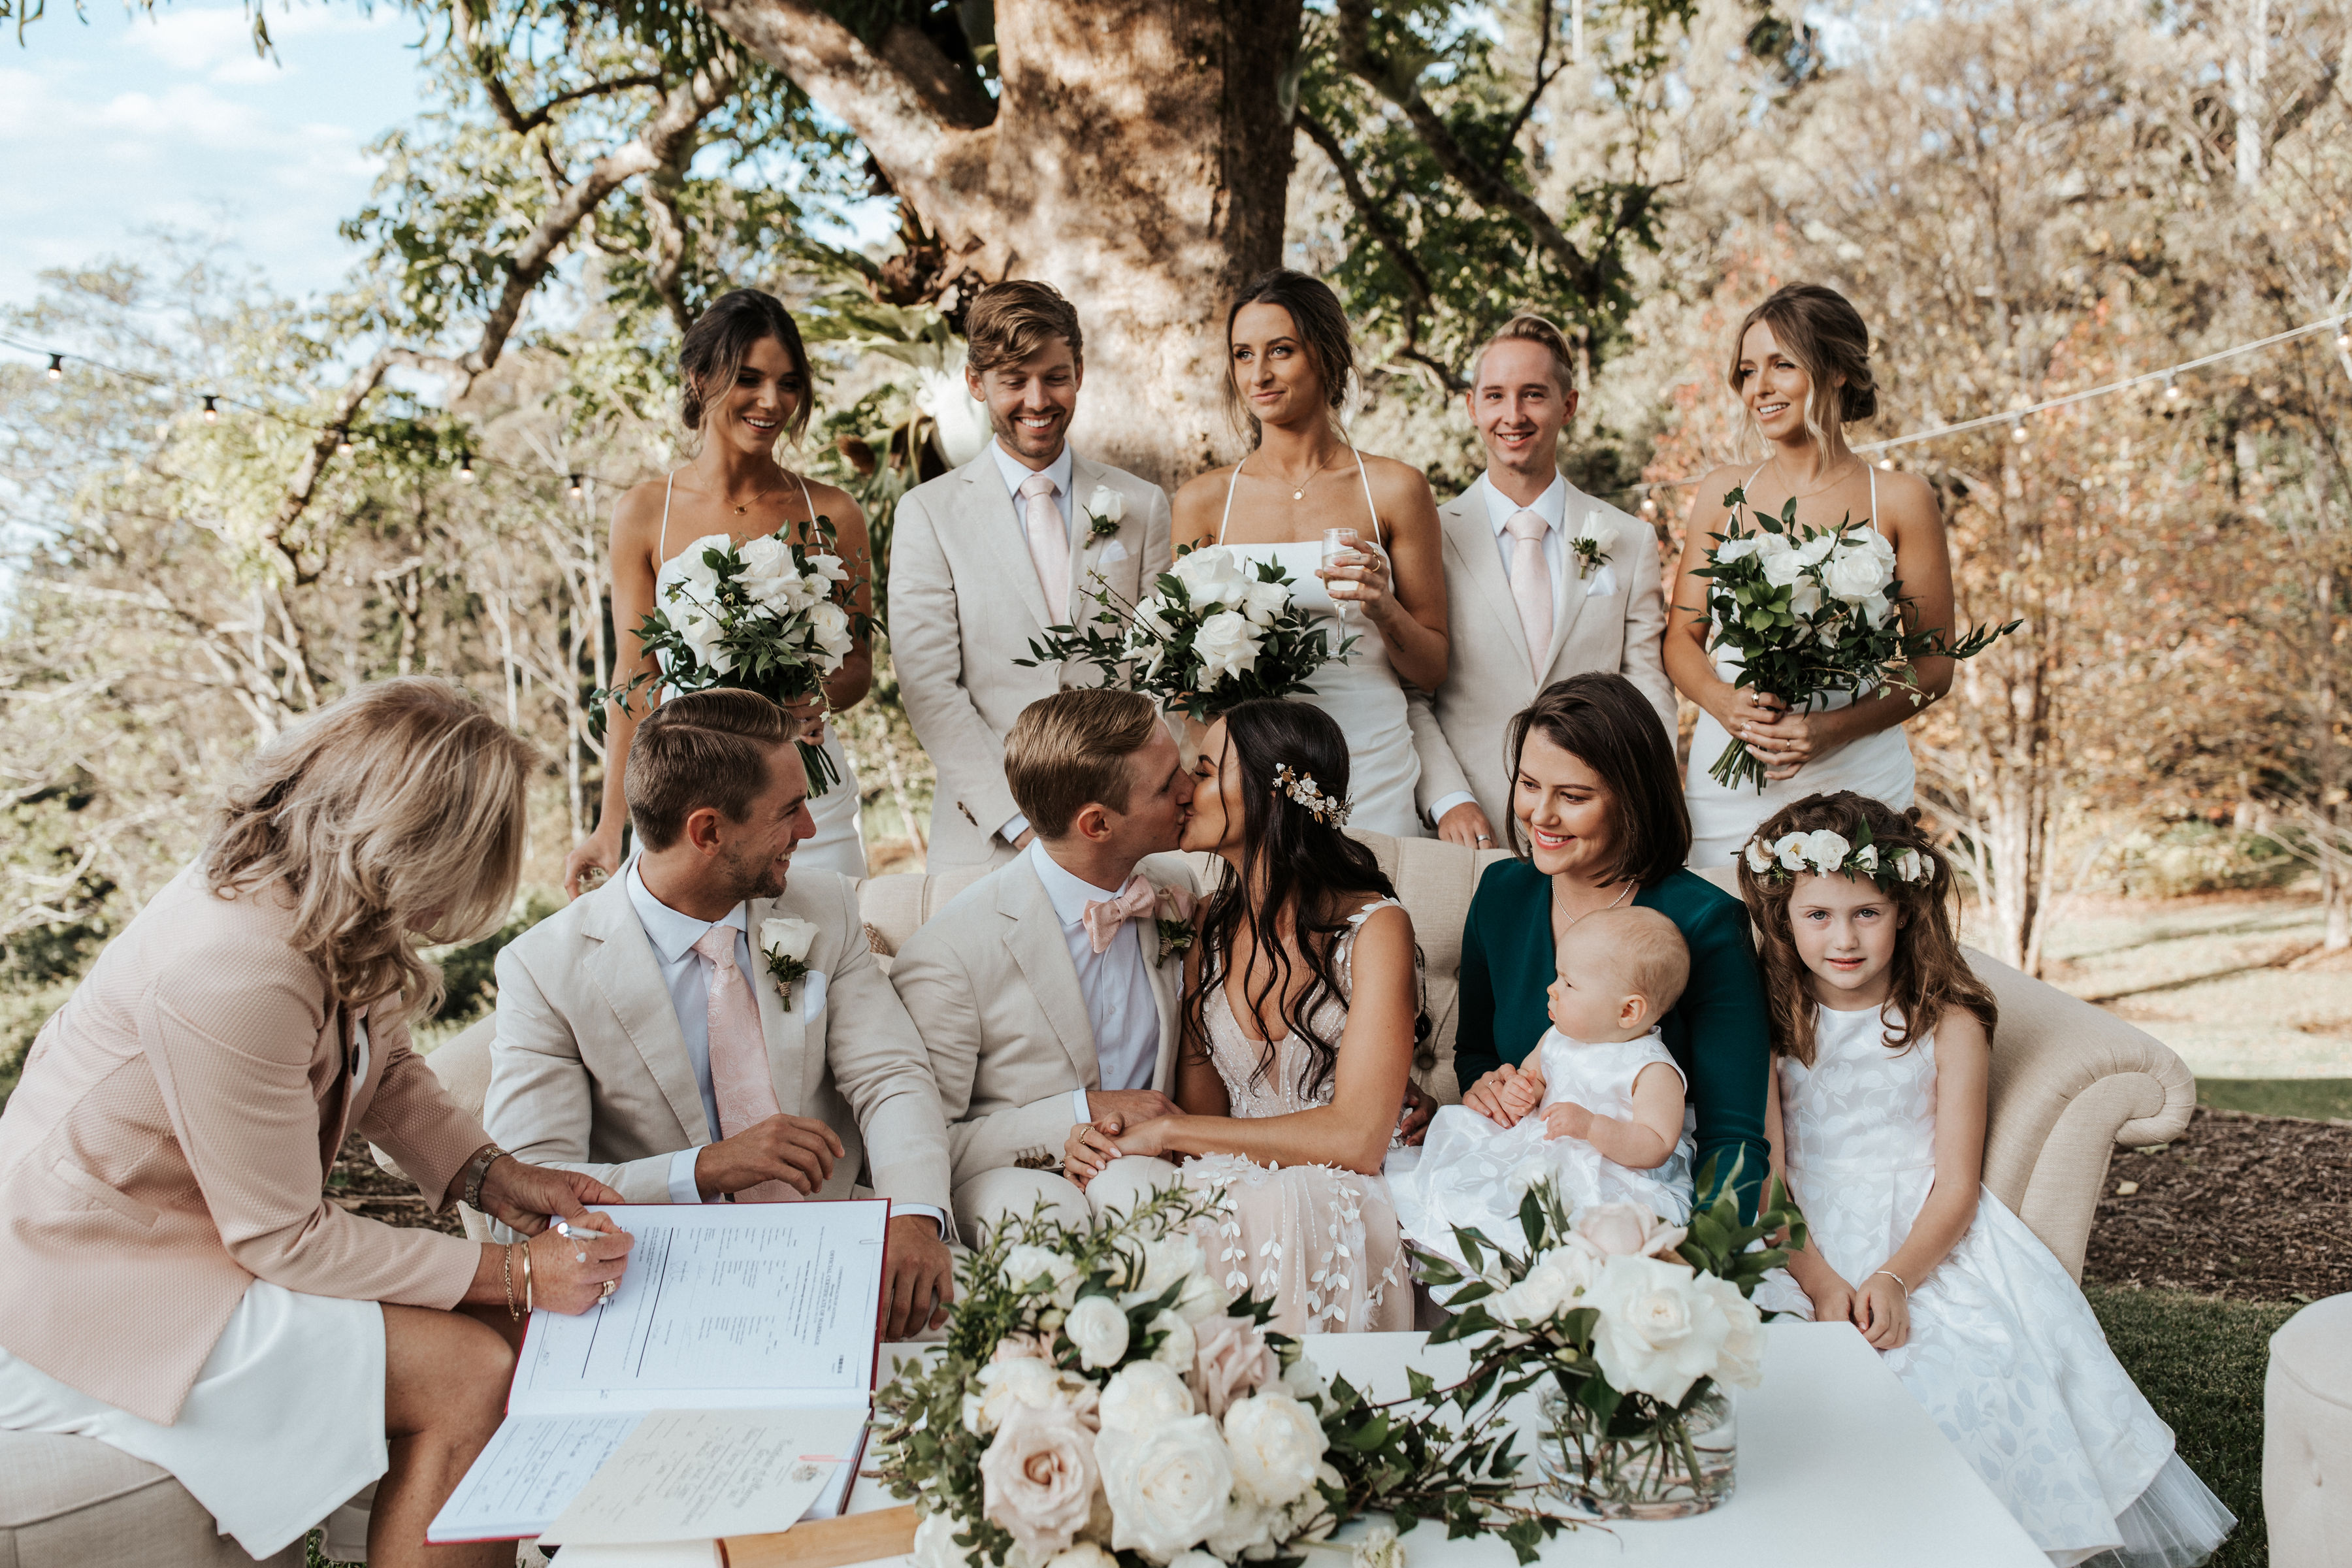 Ceremony on the Helipad in the Hinterlands with Pink and White Wedding Flowers